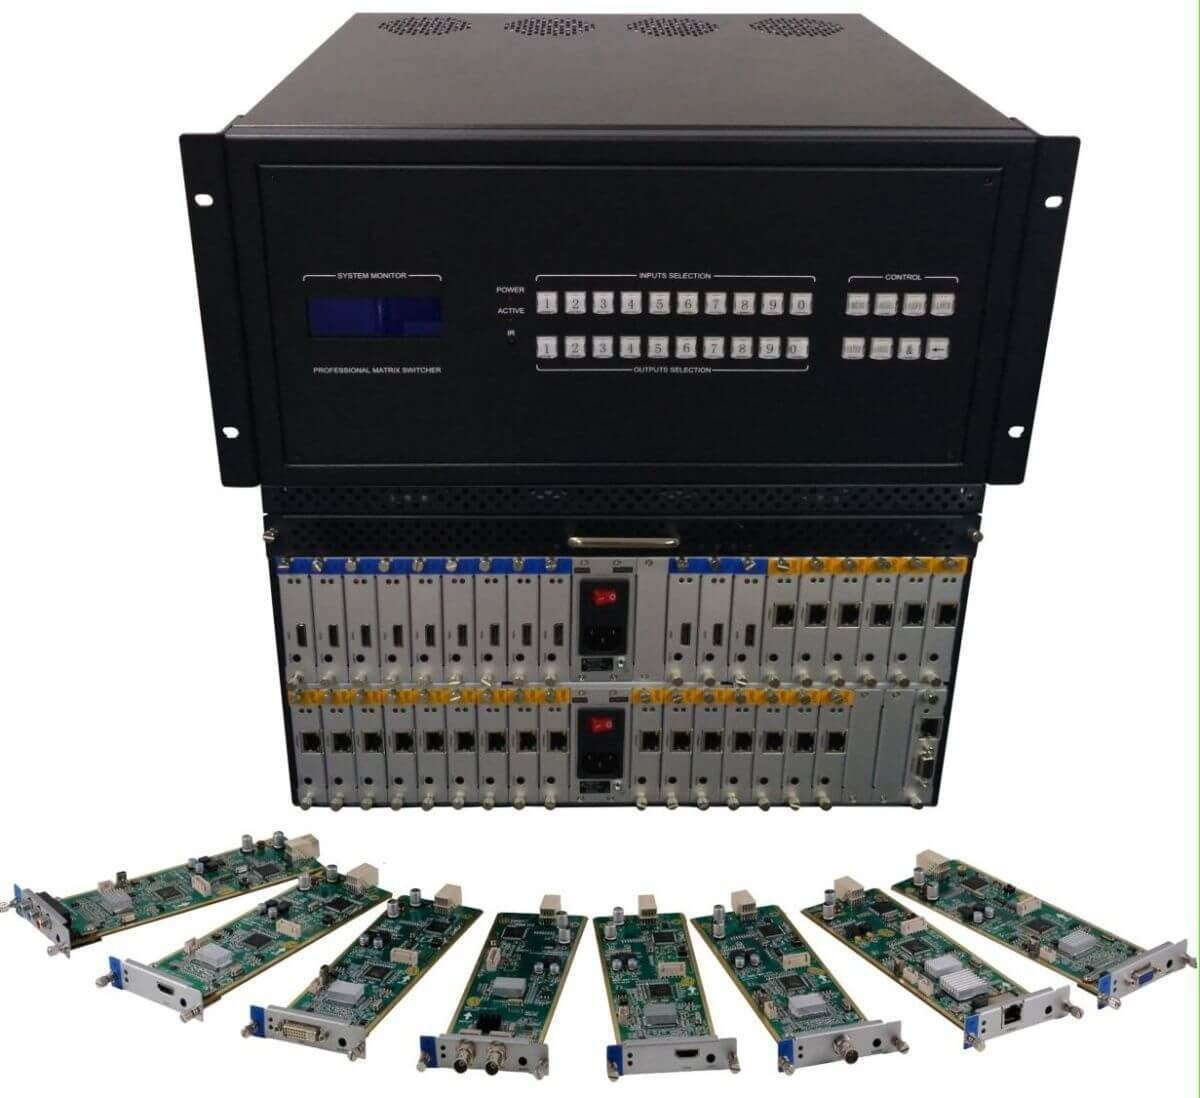 8x28 HDMI Matrix Switcher with Video Wall Processor